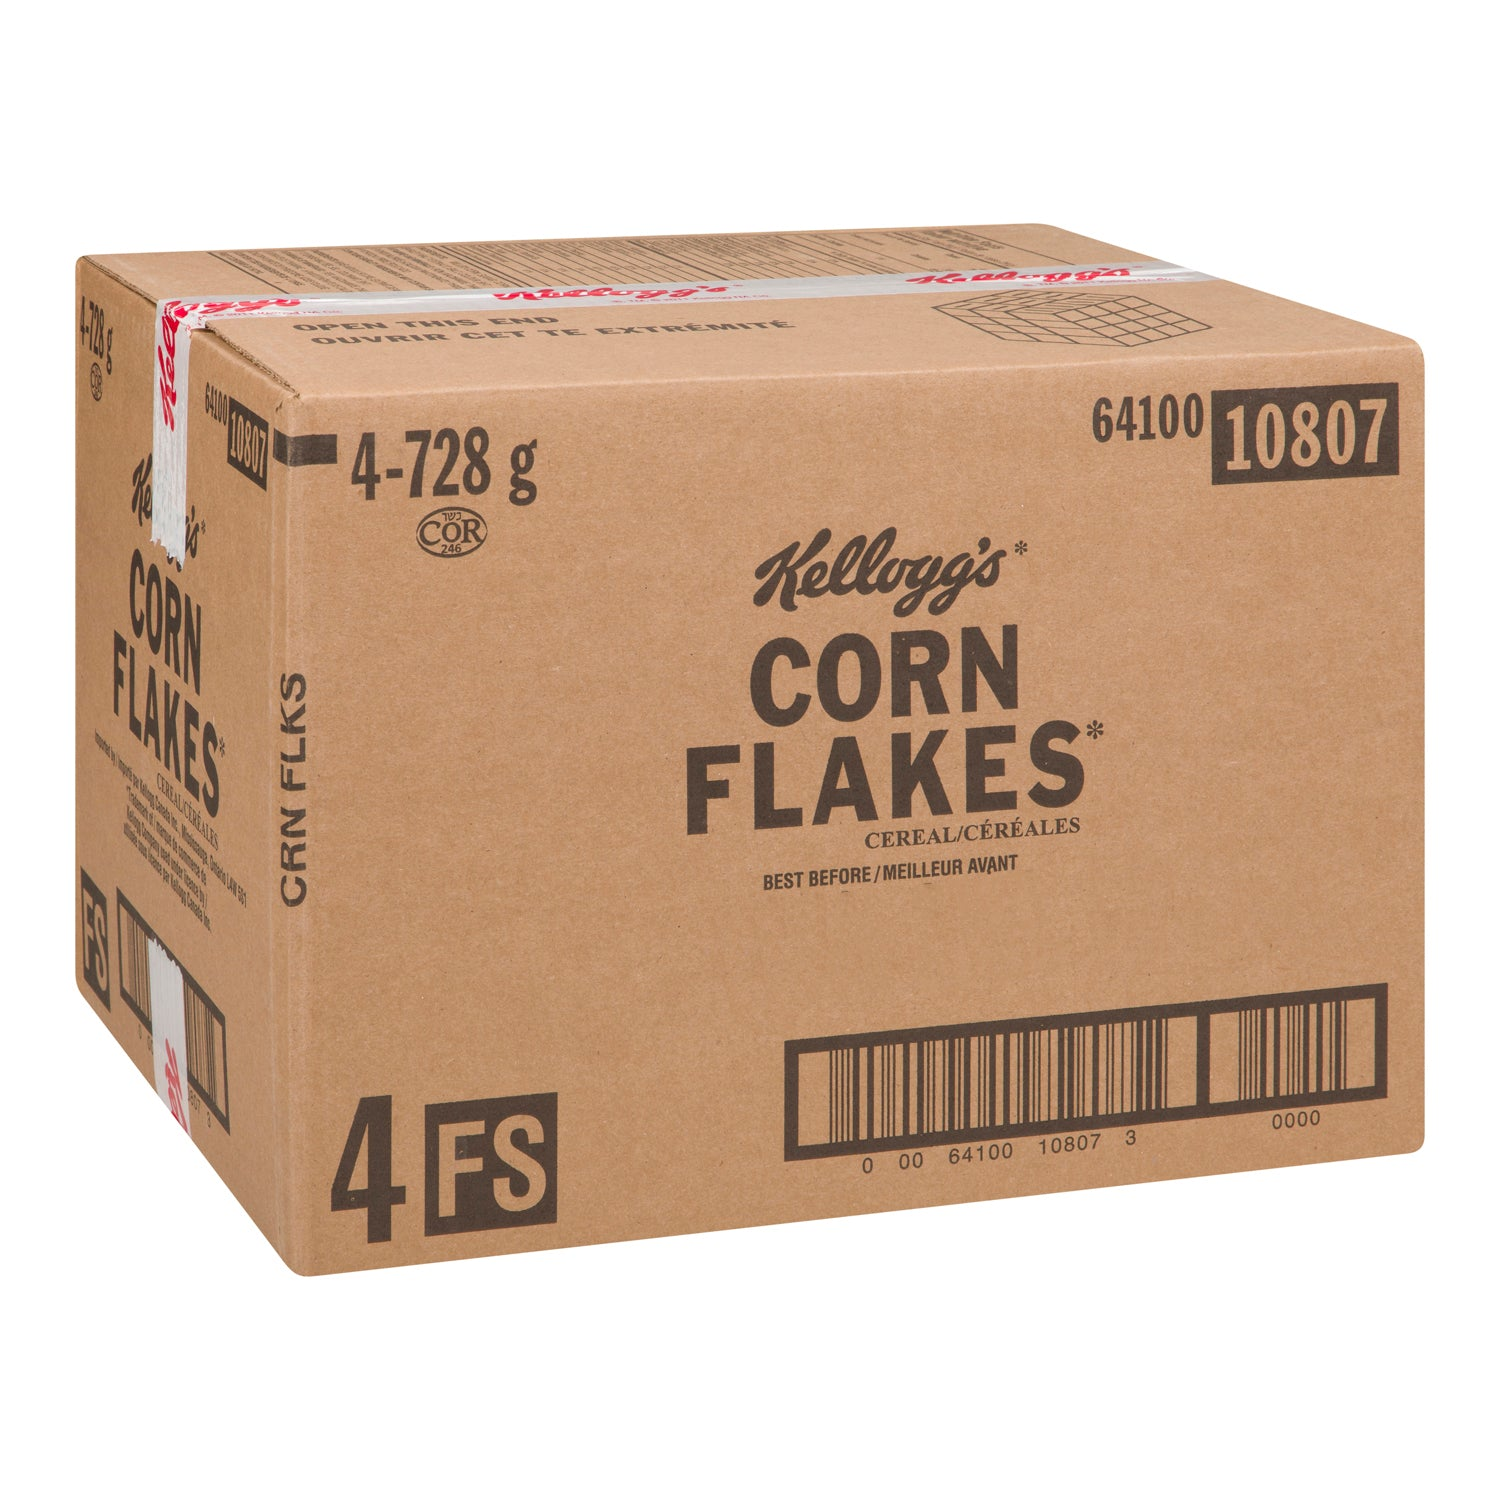 Kellogg's Corn Flakes Cereal 728 g - 4 Pack [$7.09/bag]